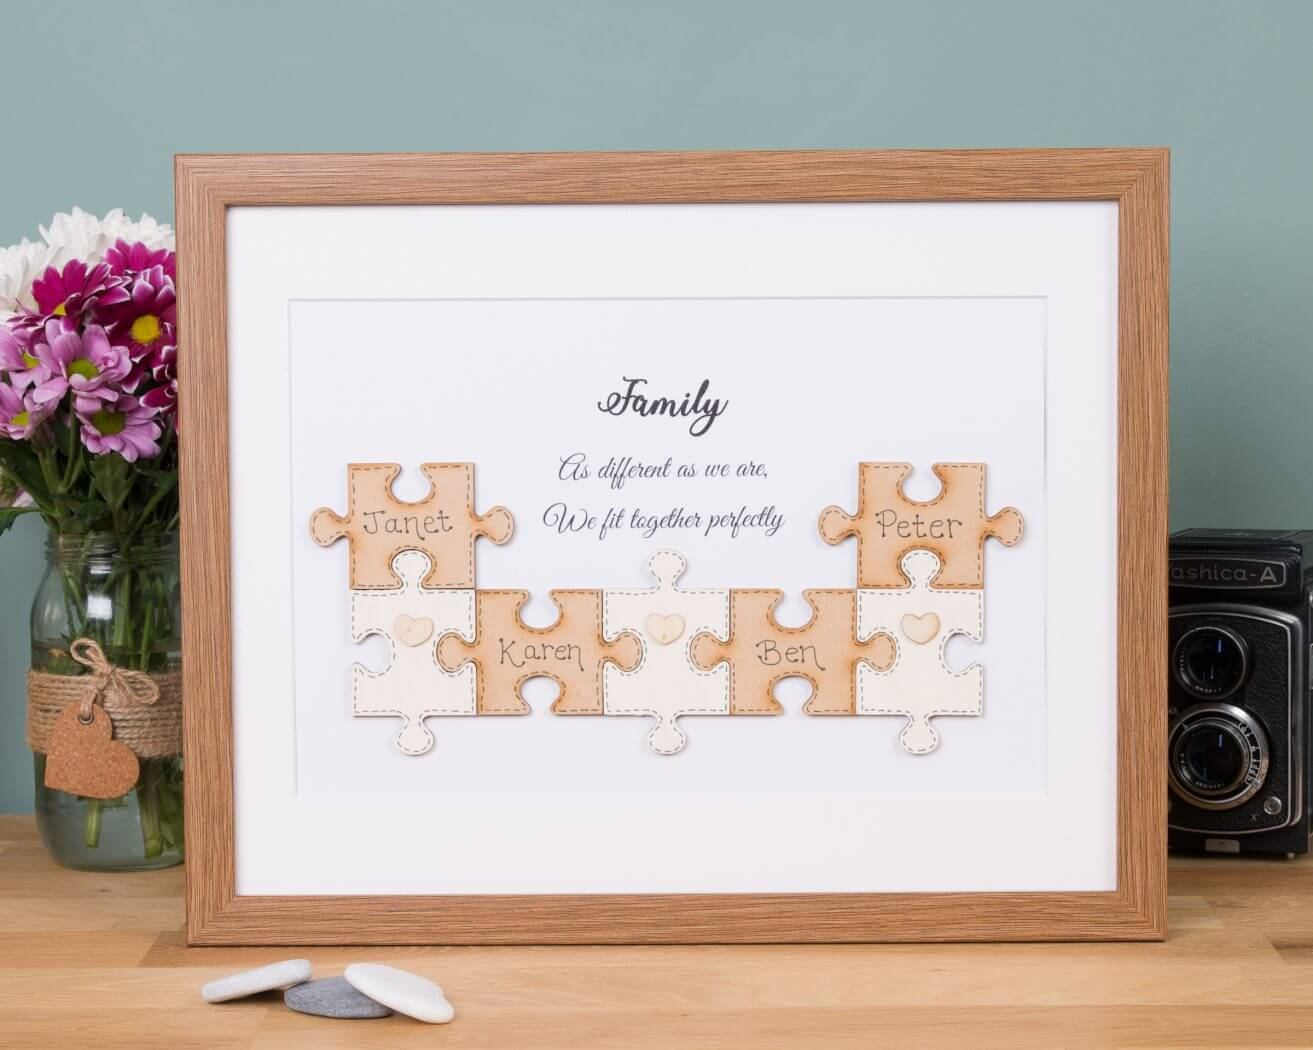 Jigsaw family tree | Handmade & Personalised | Free UK delivery